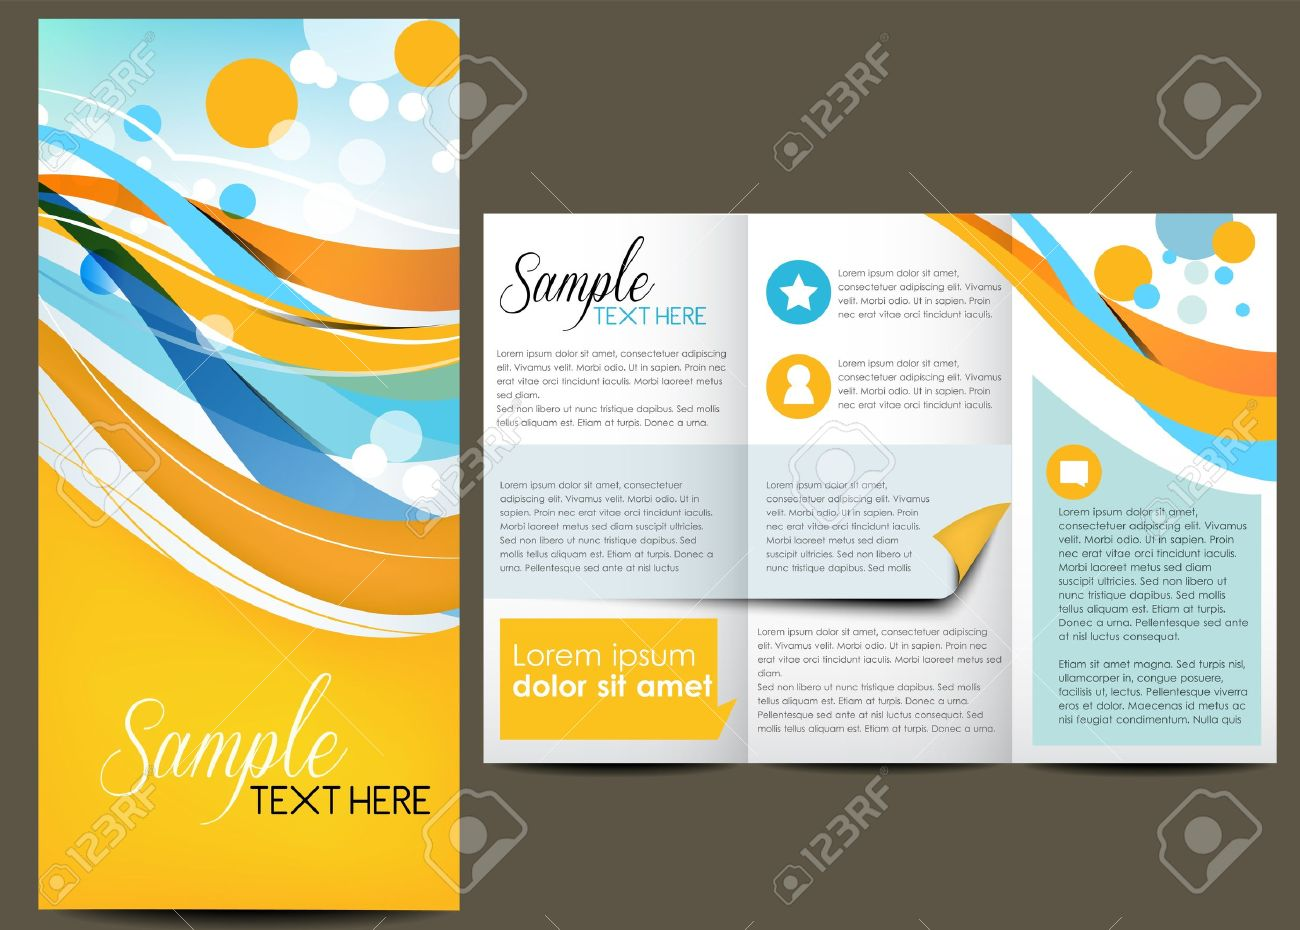 Brochure Layout Design Royalty Free Cliparts Vectors And Stock - Brochure templates design